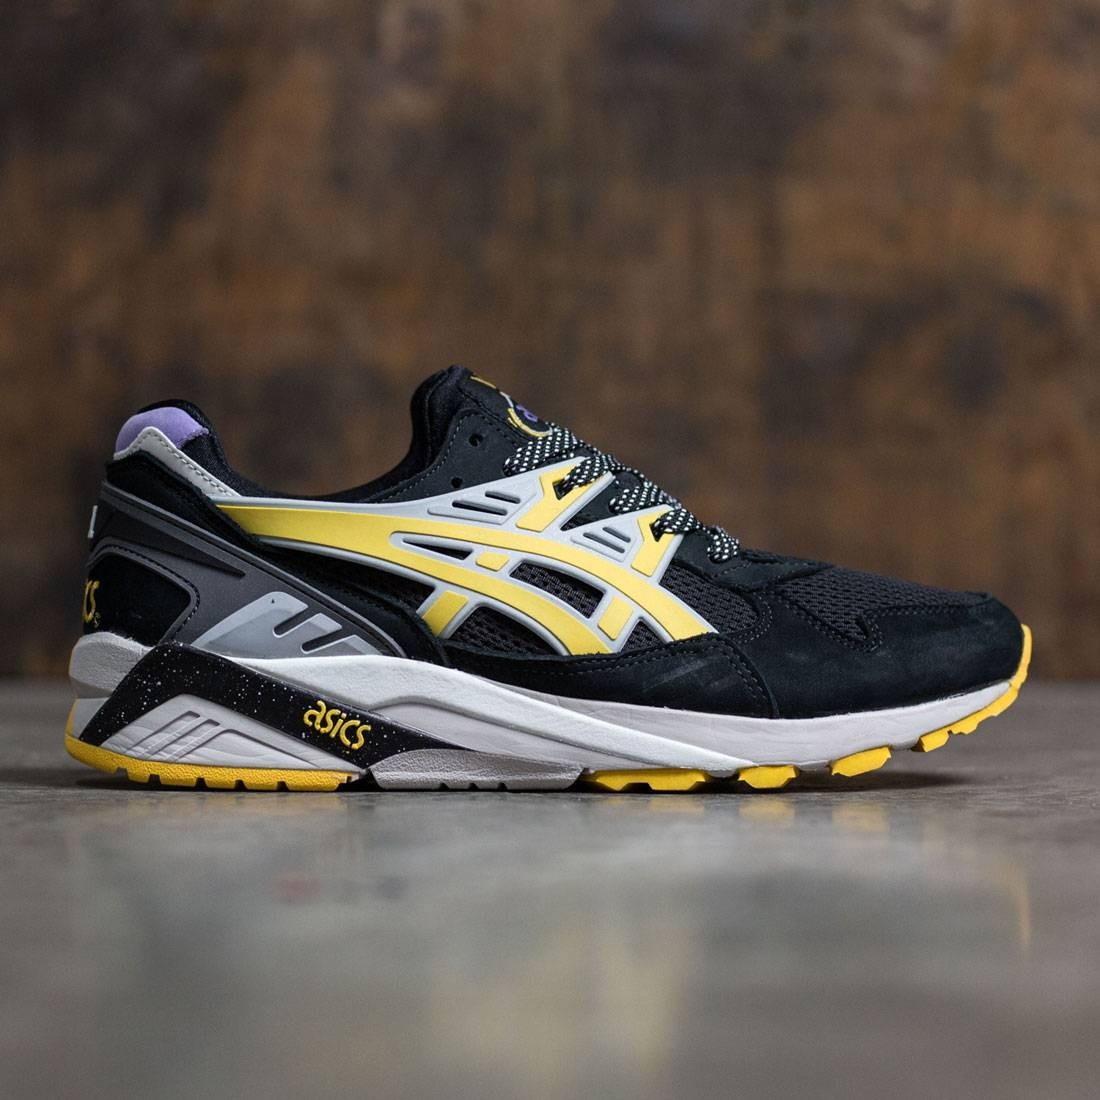 555ffca30550 Asics x Sneaker Freaker Men Gel-Kayano Trainer - Melvin black yellow